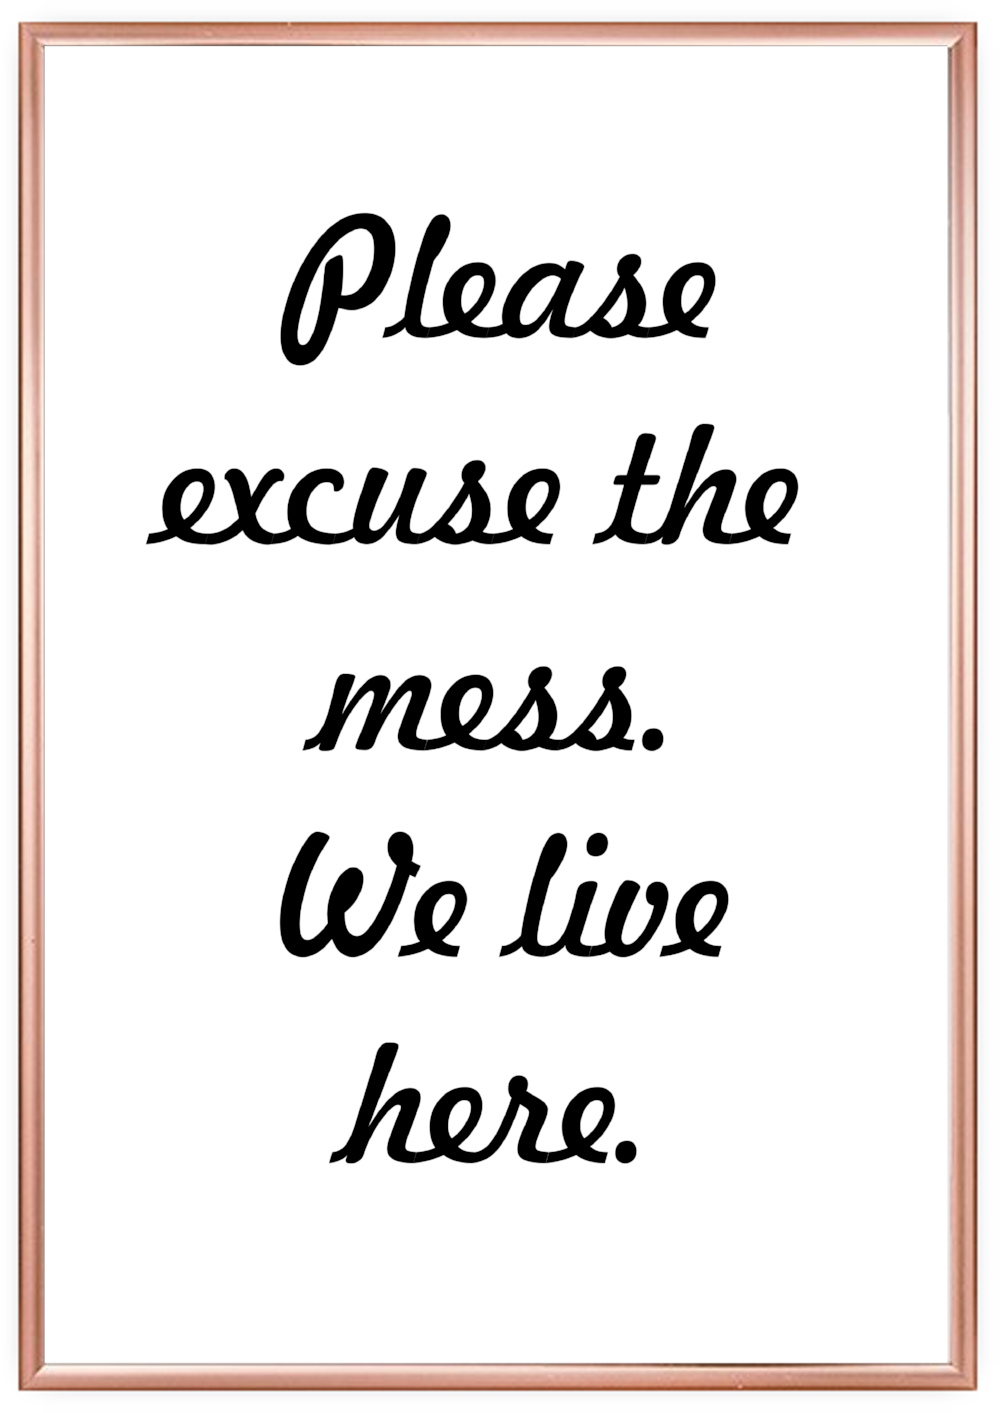 A3 / A2 Printed Poster Please Excuse The Mess We Live Here. - Cutting Image